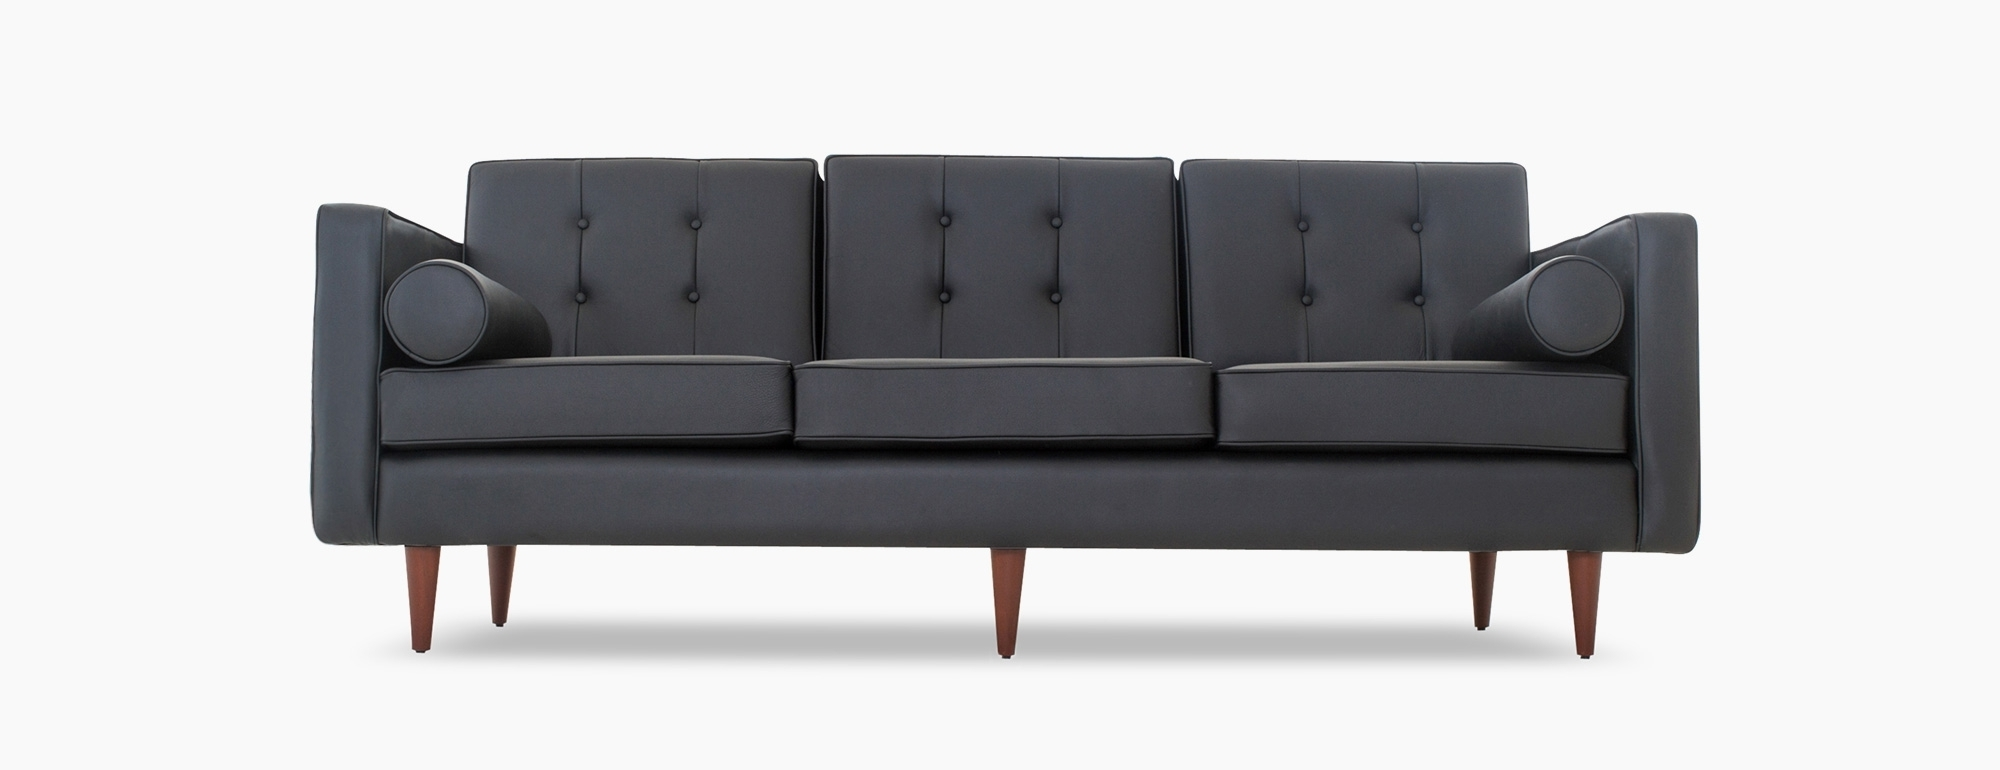 Braxton Leather Sofa Set • Leather Sofa Within Most Current Braxton Sofas (View 14 of 20)